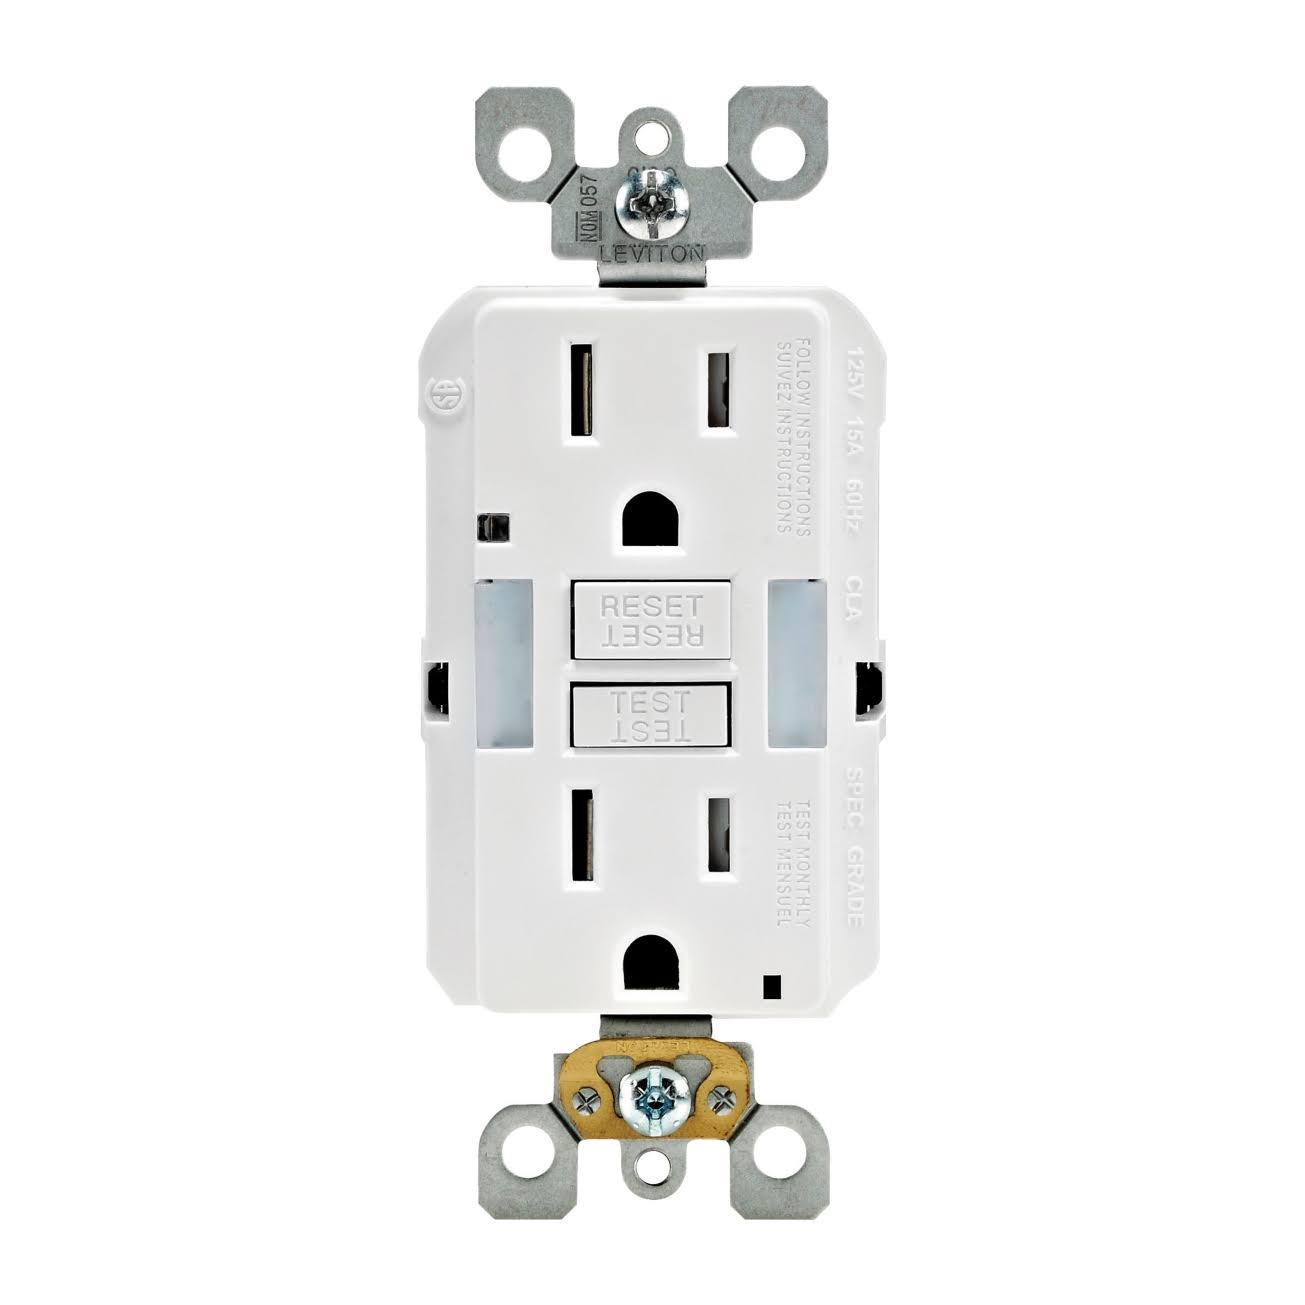 Leviton Outlet - White, 15A, 125V